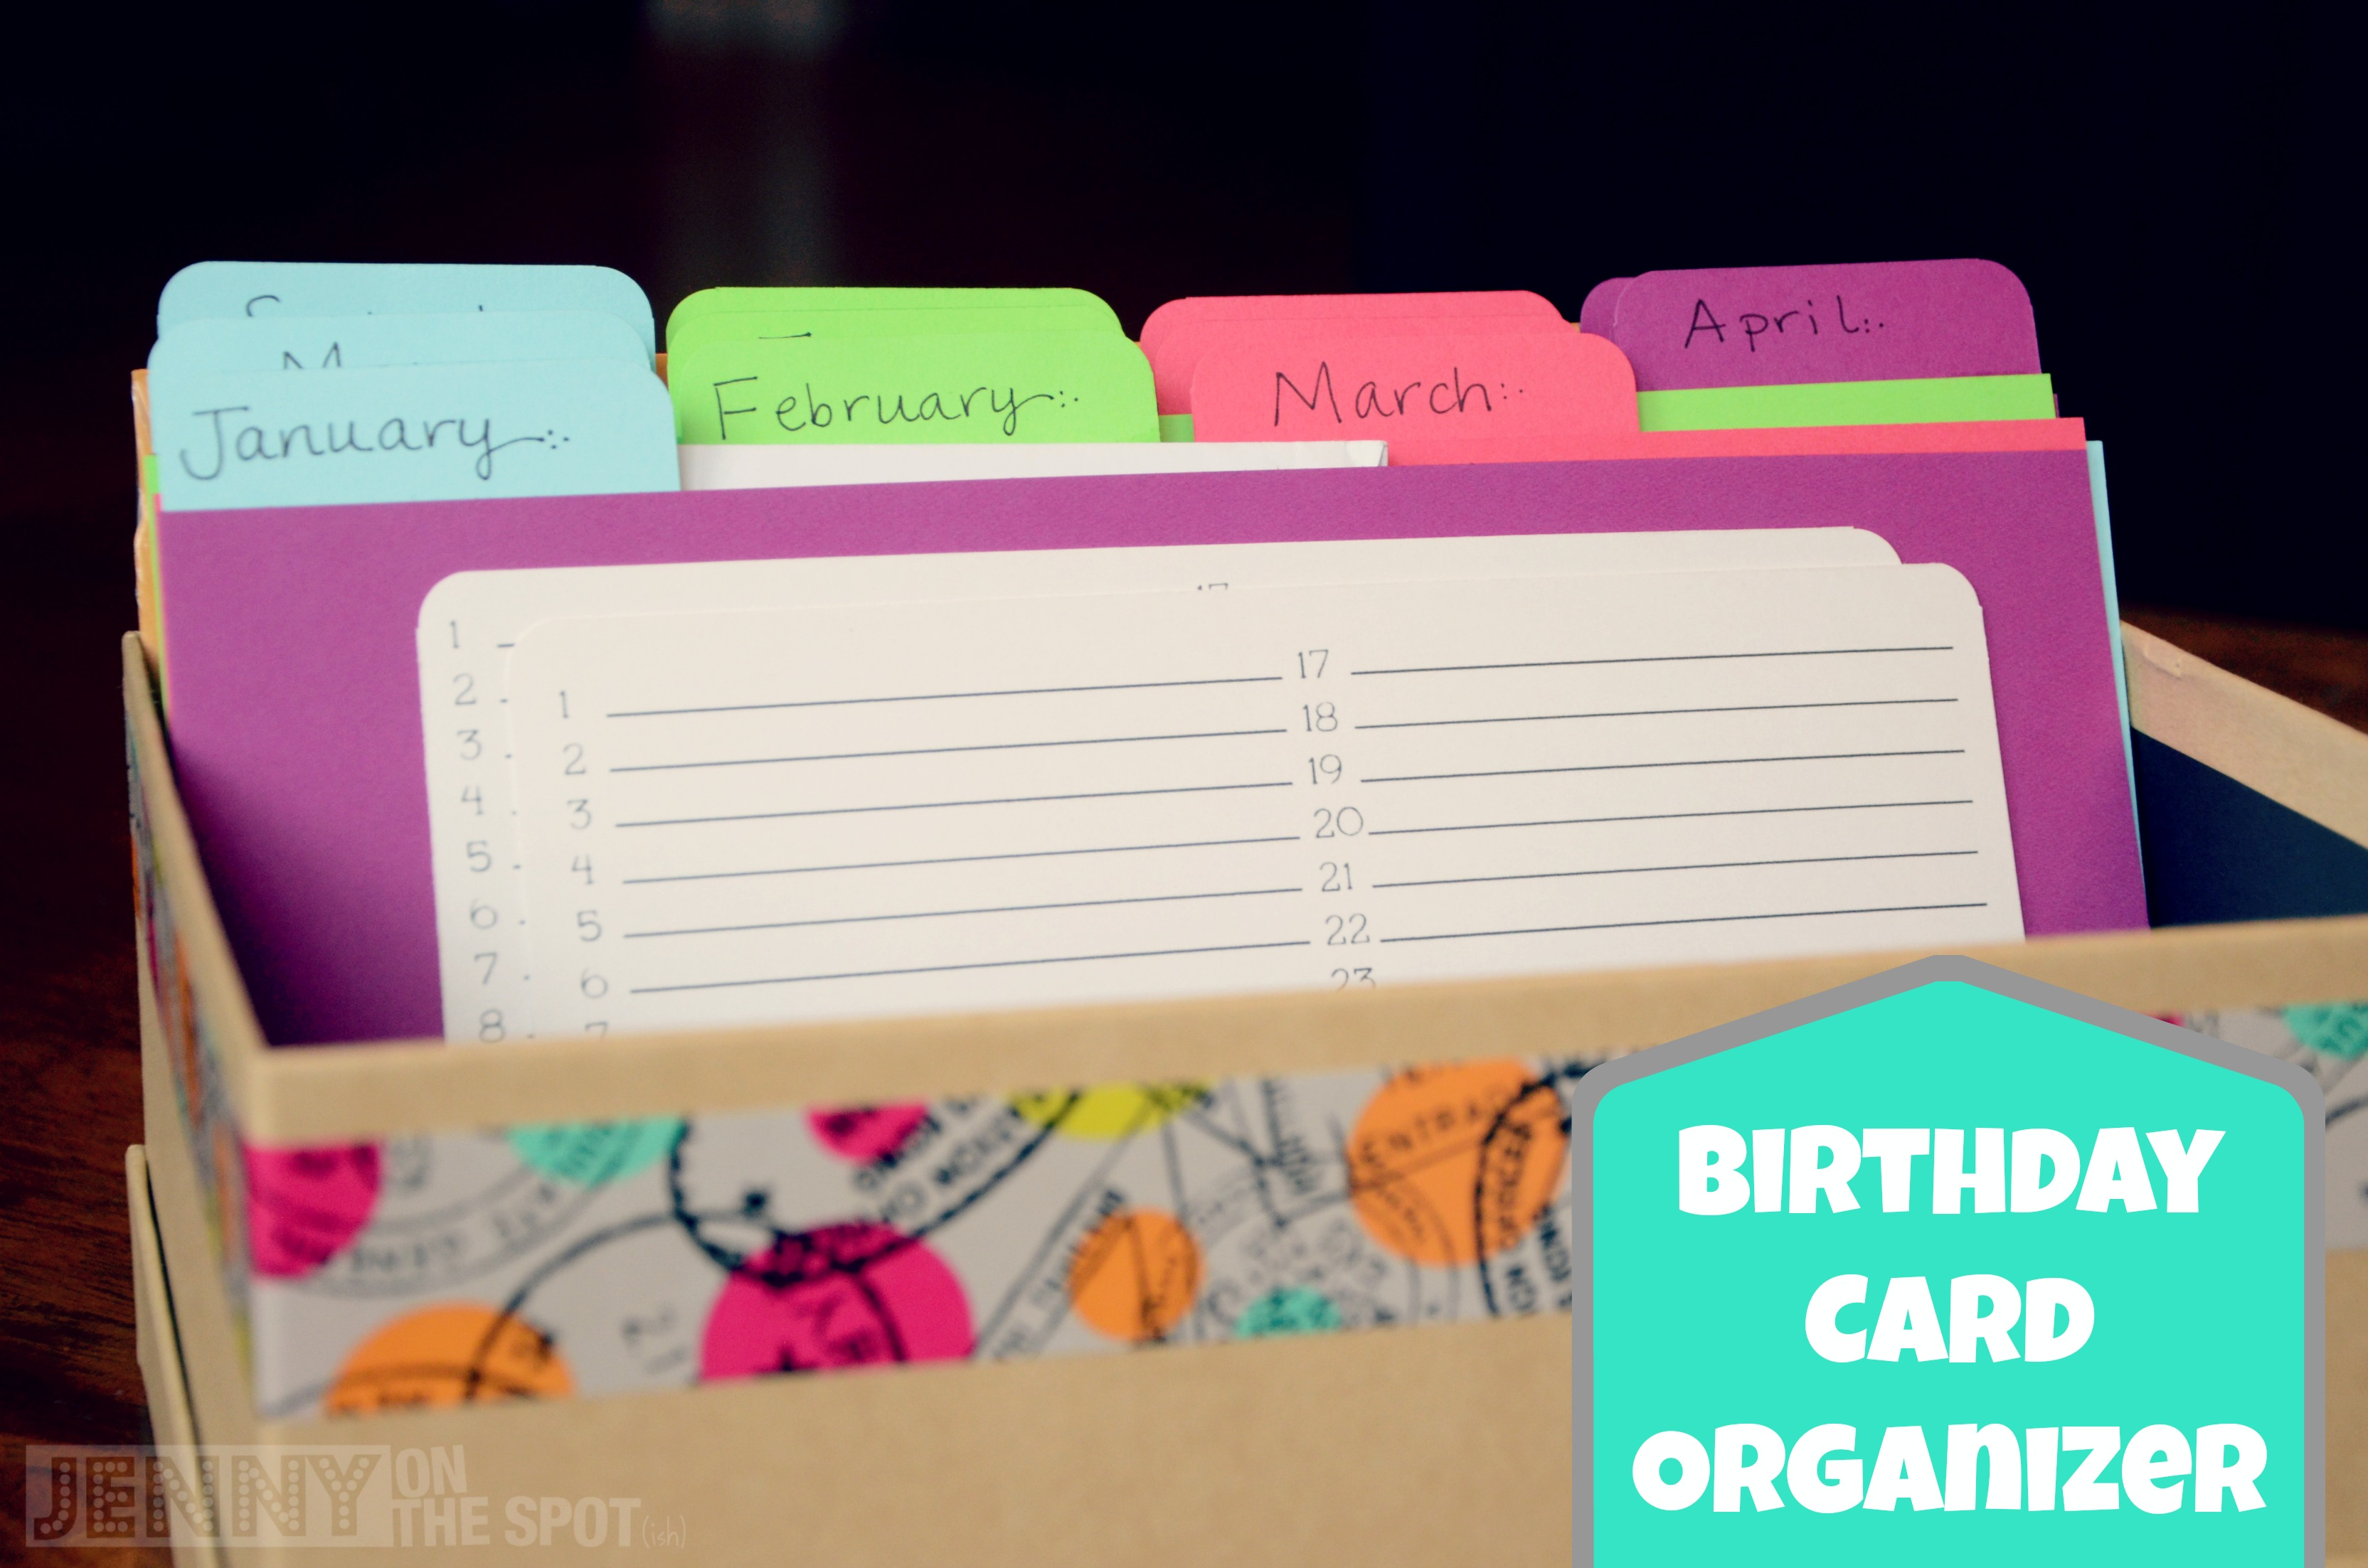 How To Make A Birthday Card Organizer And Card Box Jenny On The Spot